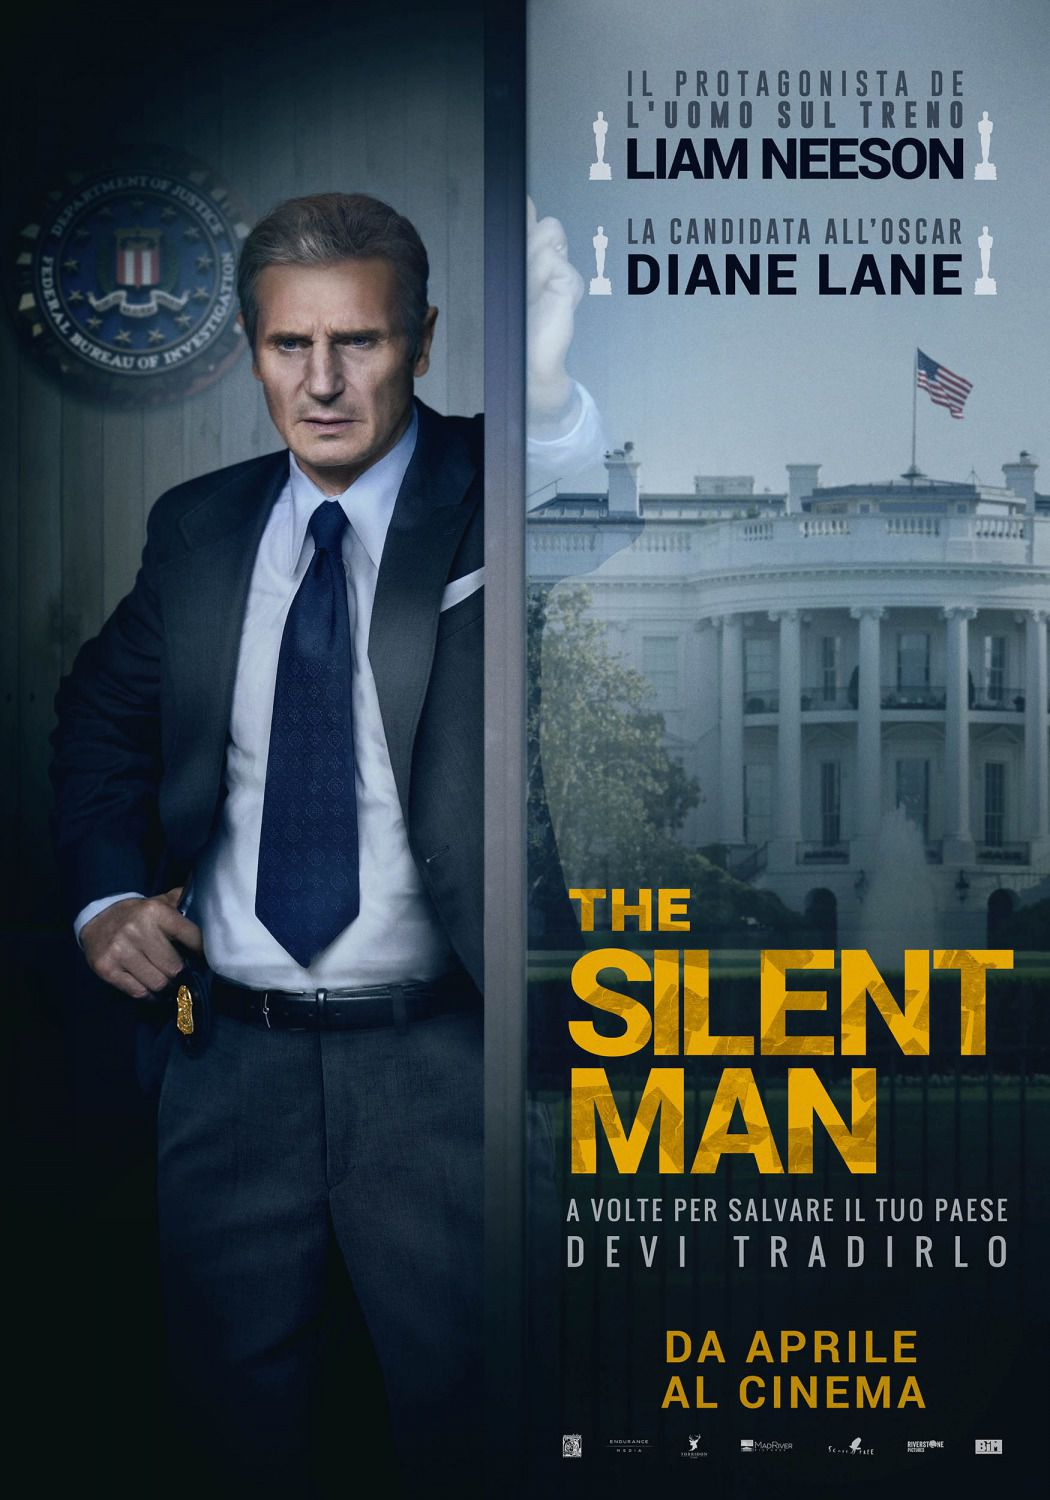 The Silent Man - Mark Felt the man who brought down the White House - film poster